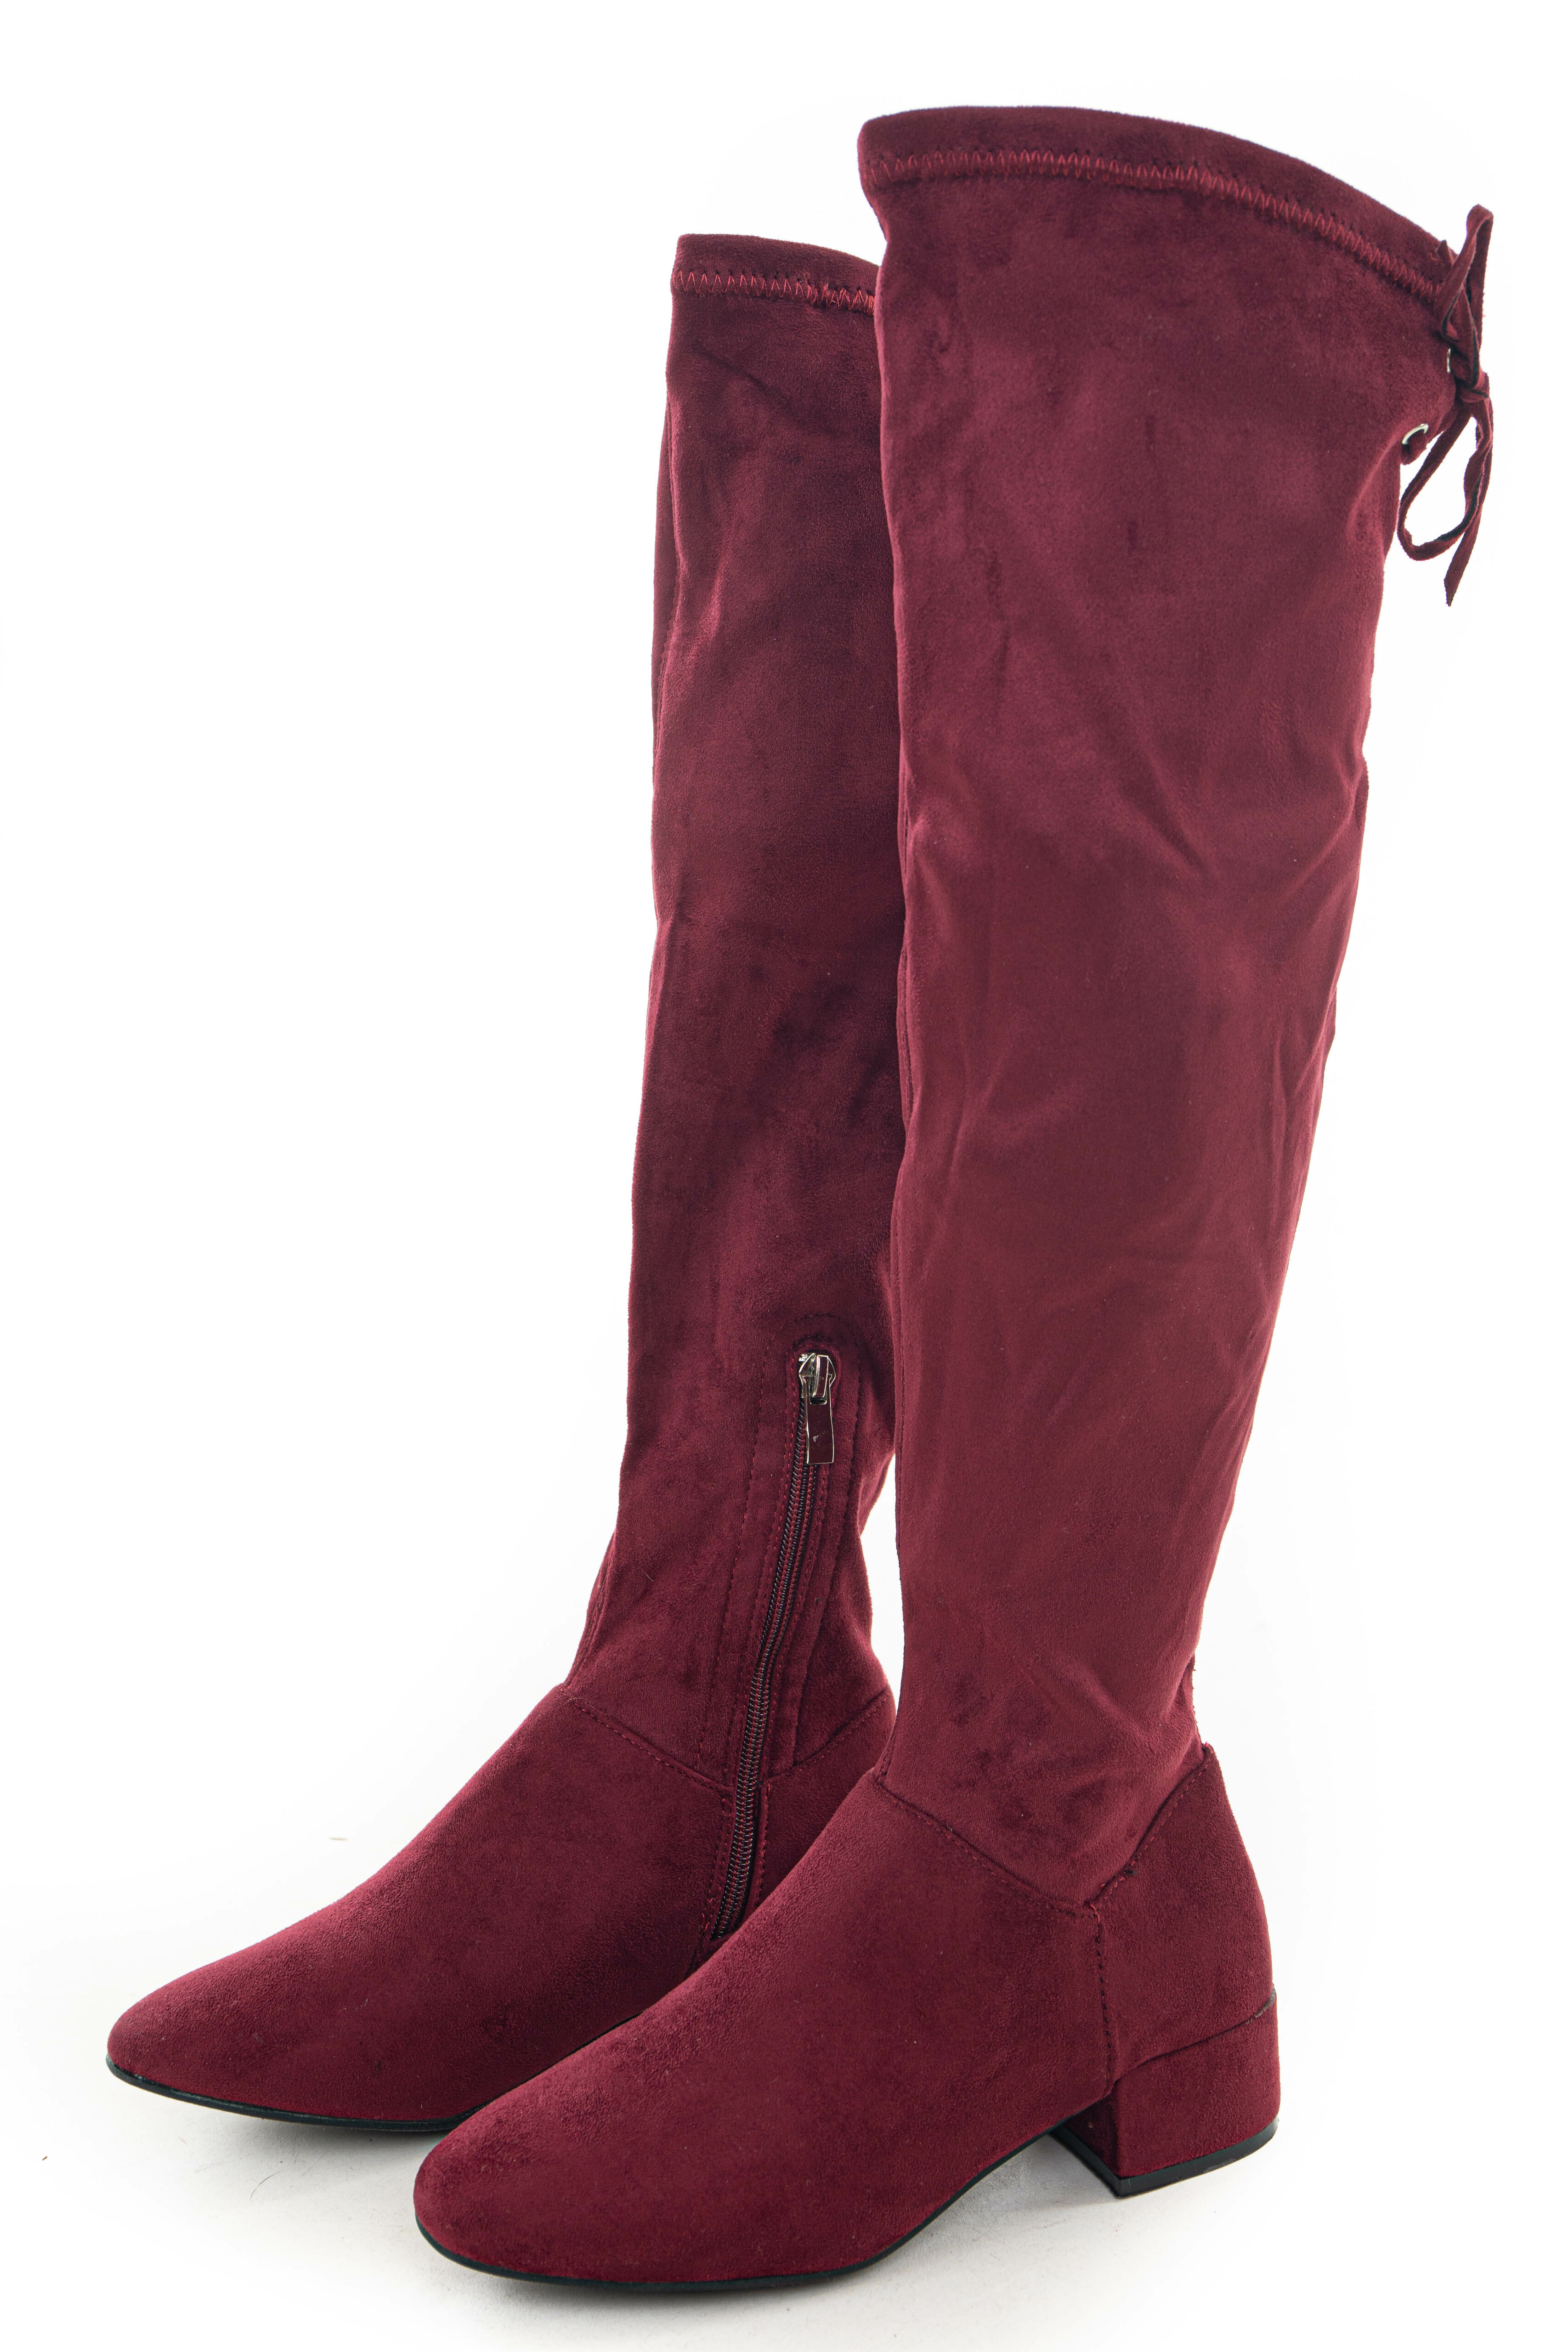 Wine Faux Suede Boots with Back Lace Up Detail